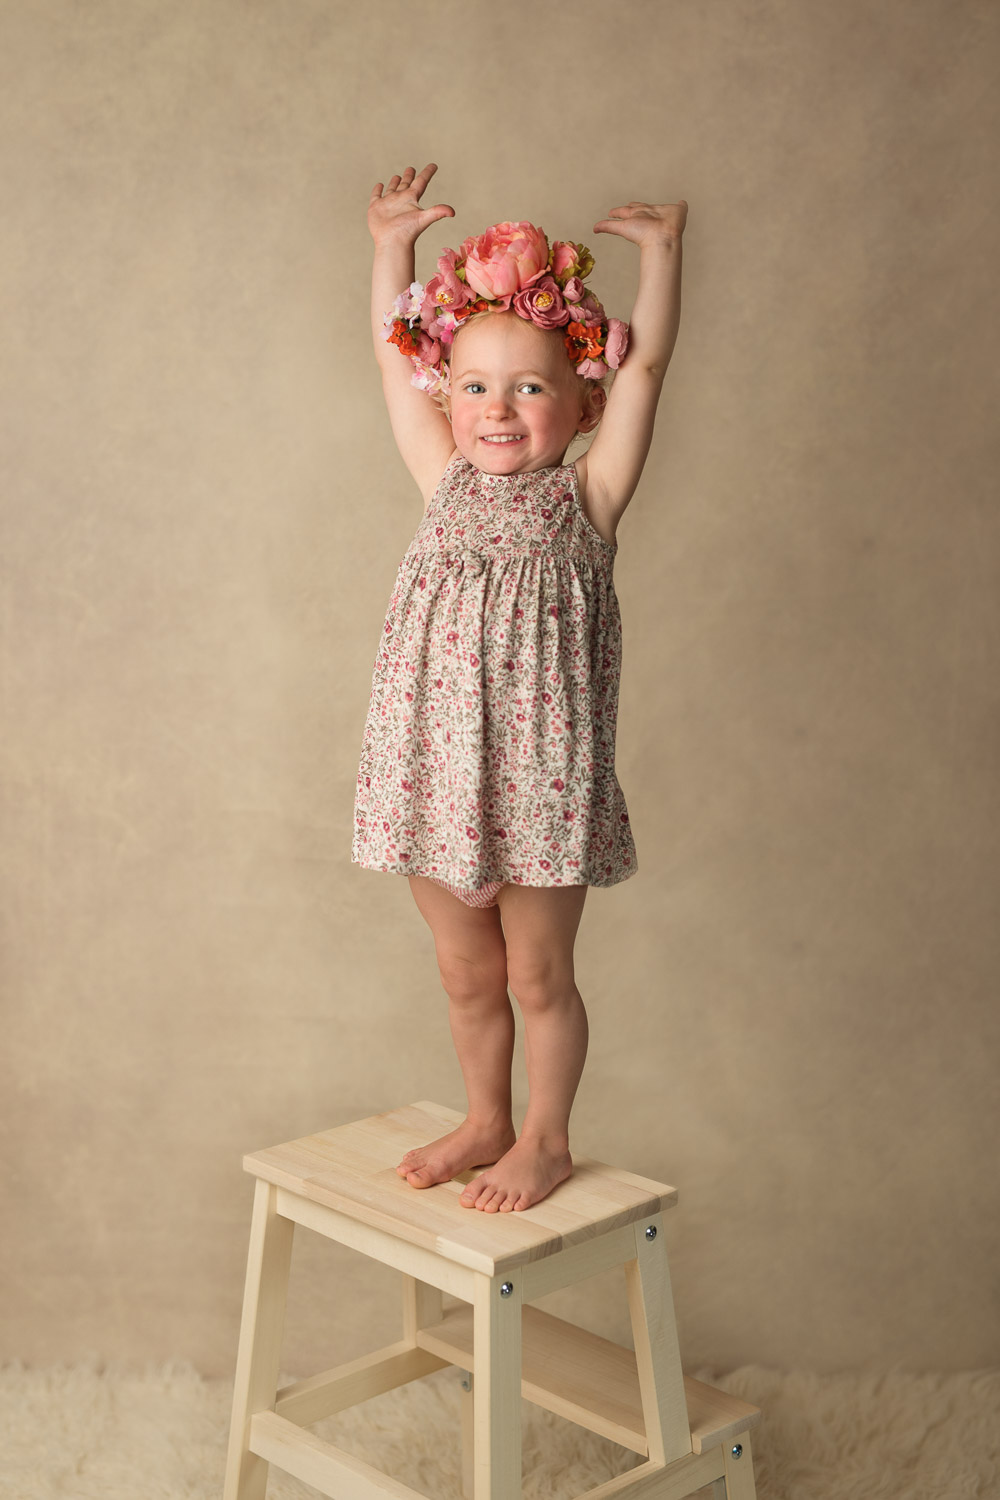 child portrait by auckland photographer siobhan kelly photography